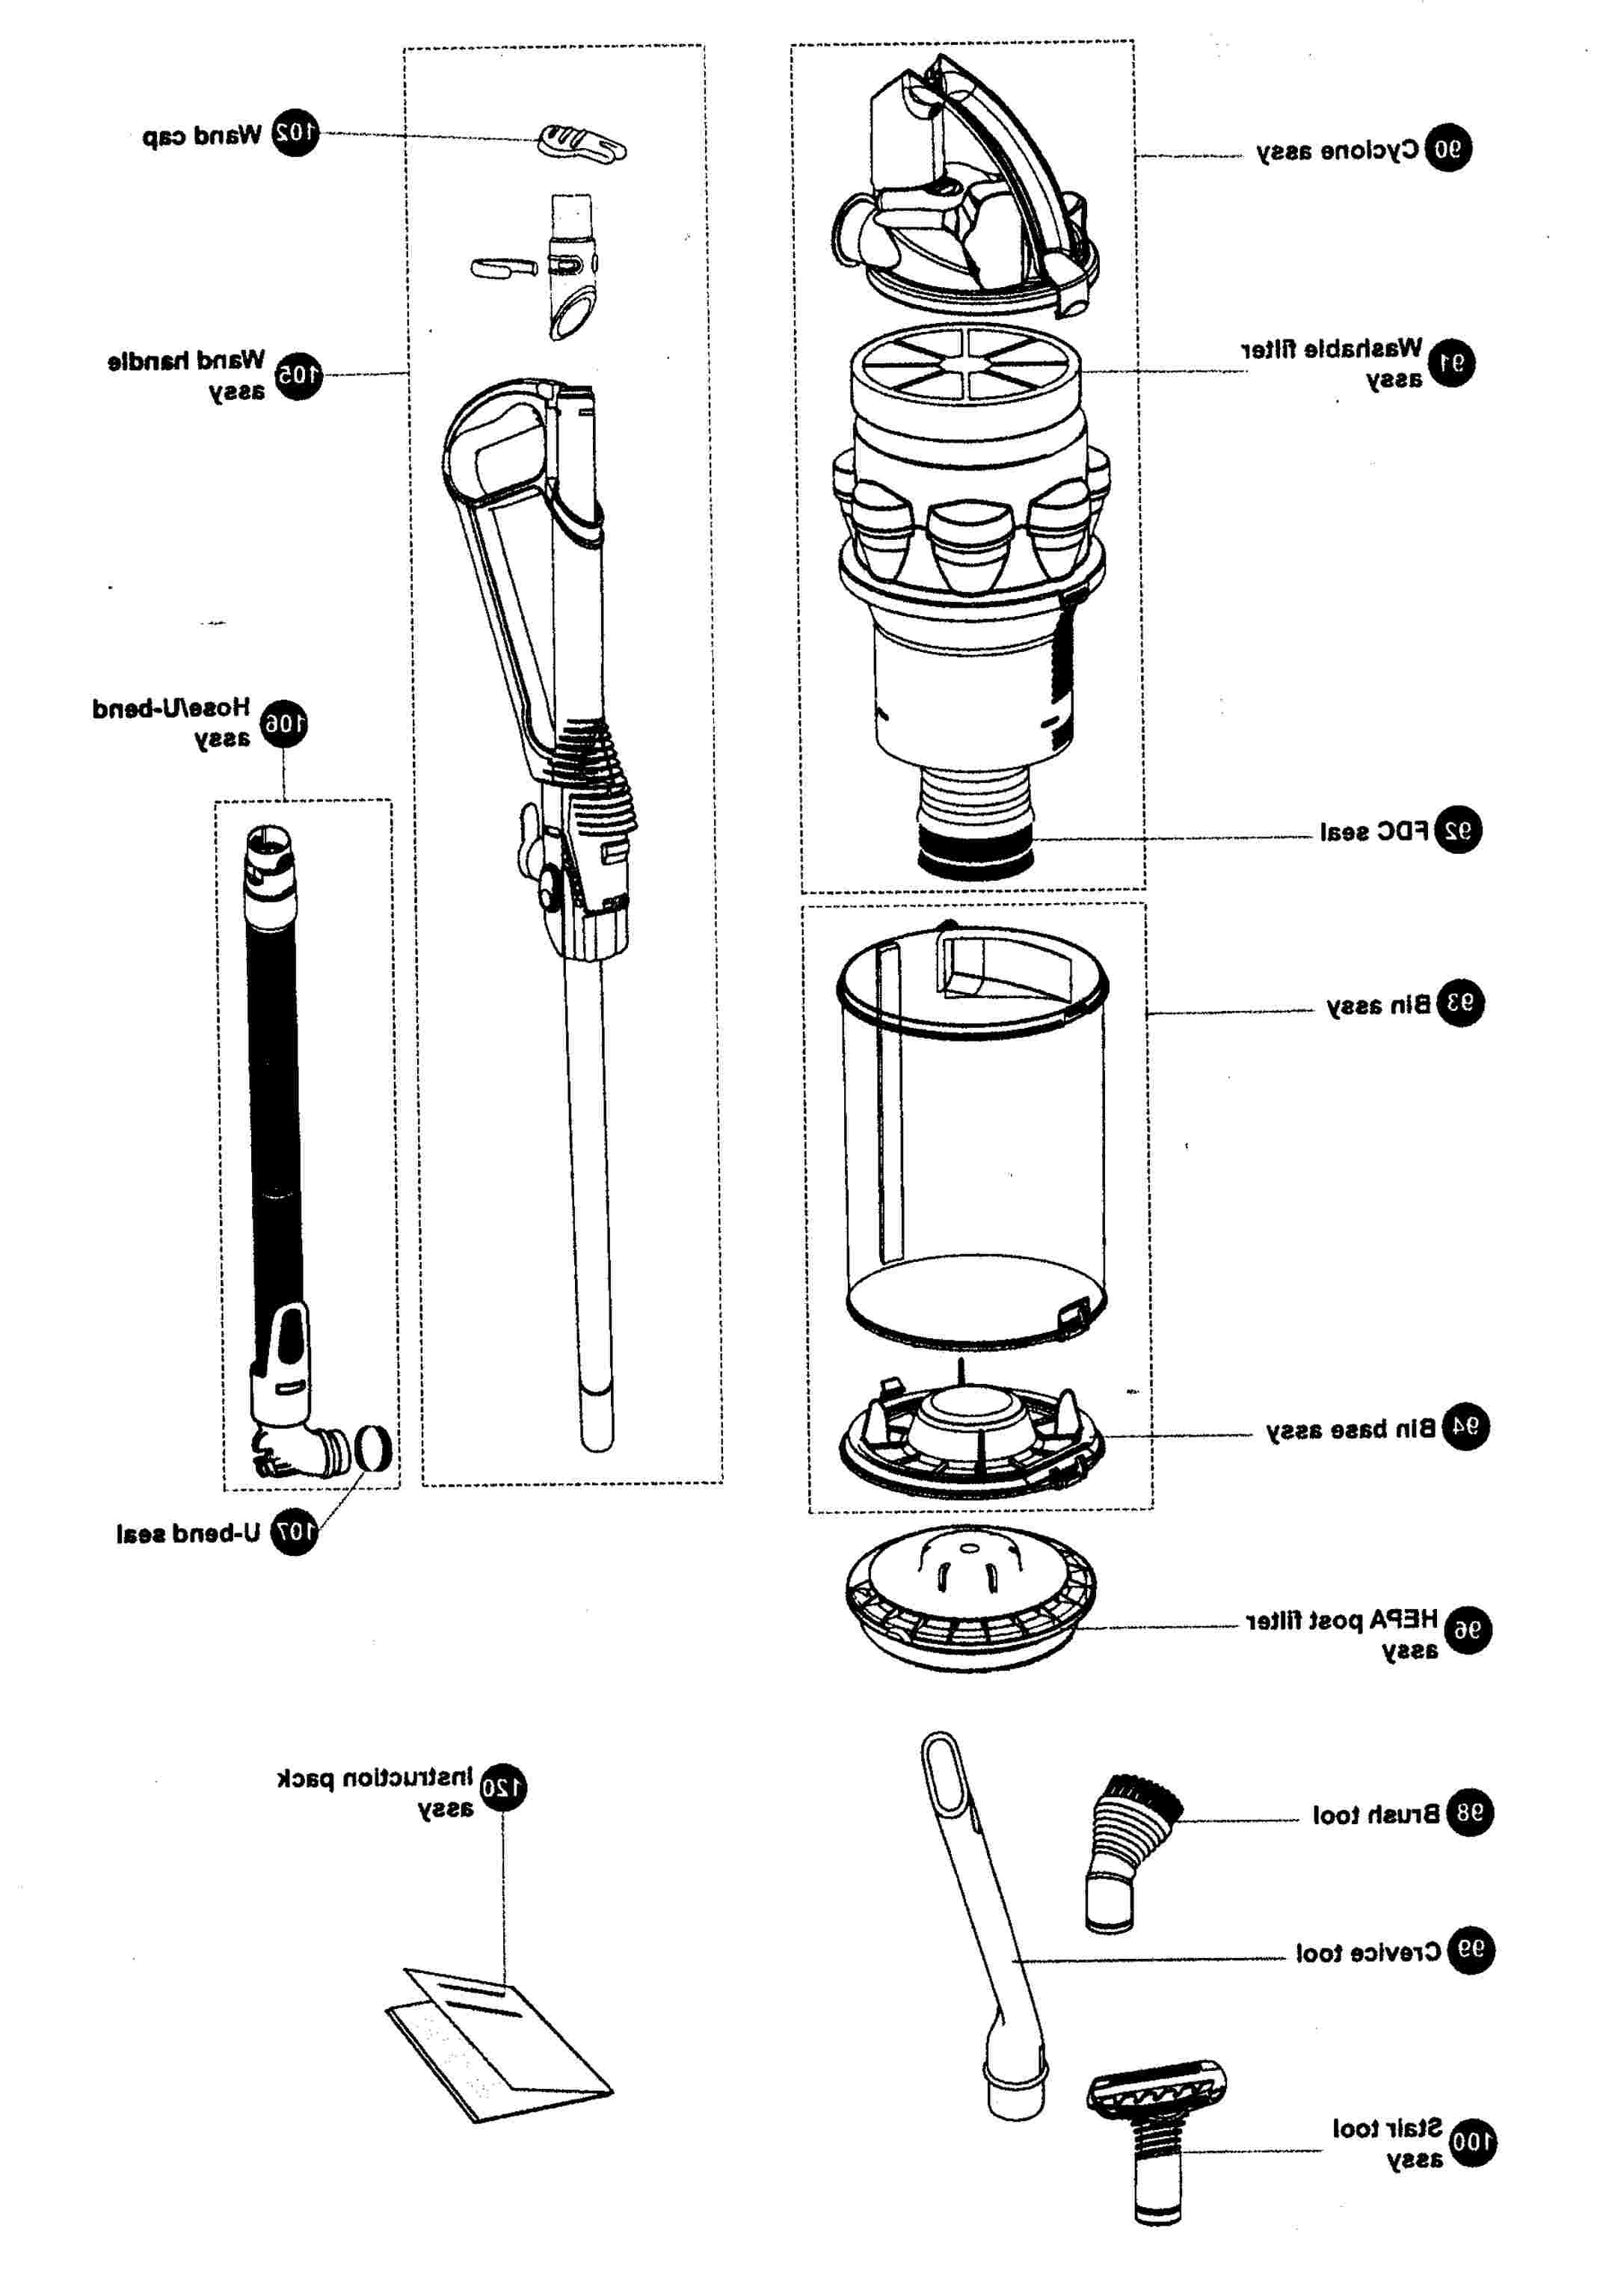 Wiring Database 2020: 30 Dyson Dc07 Parts Diagram